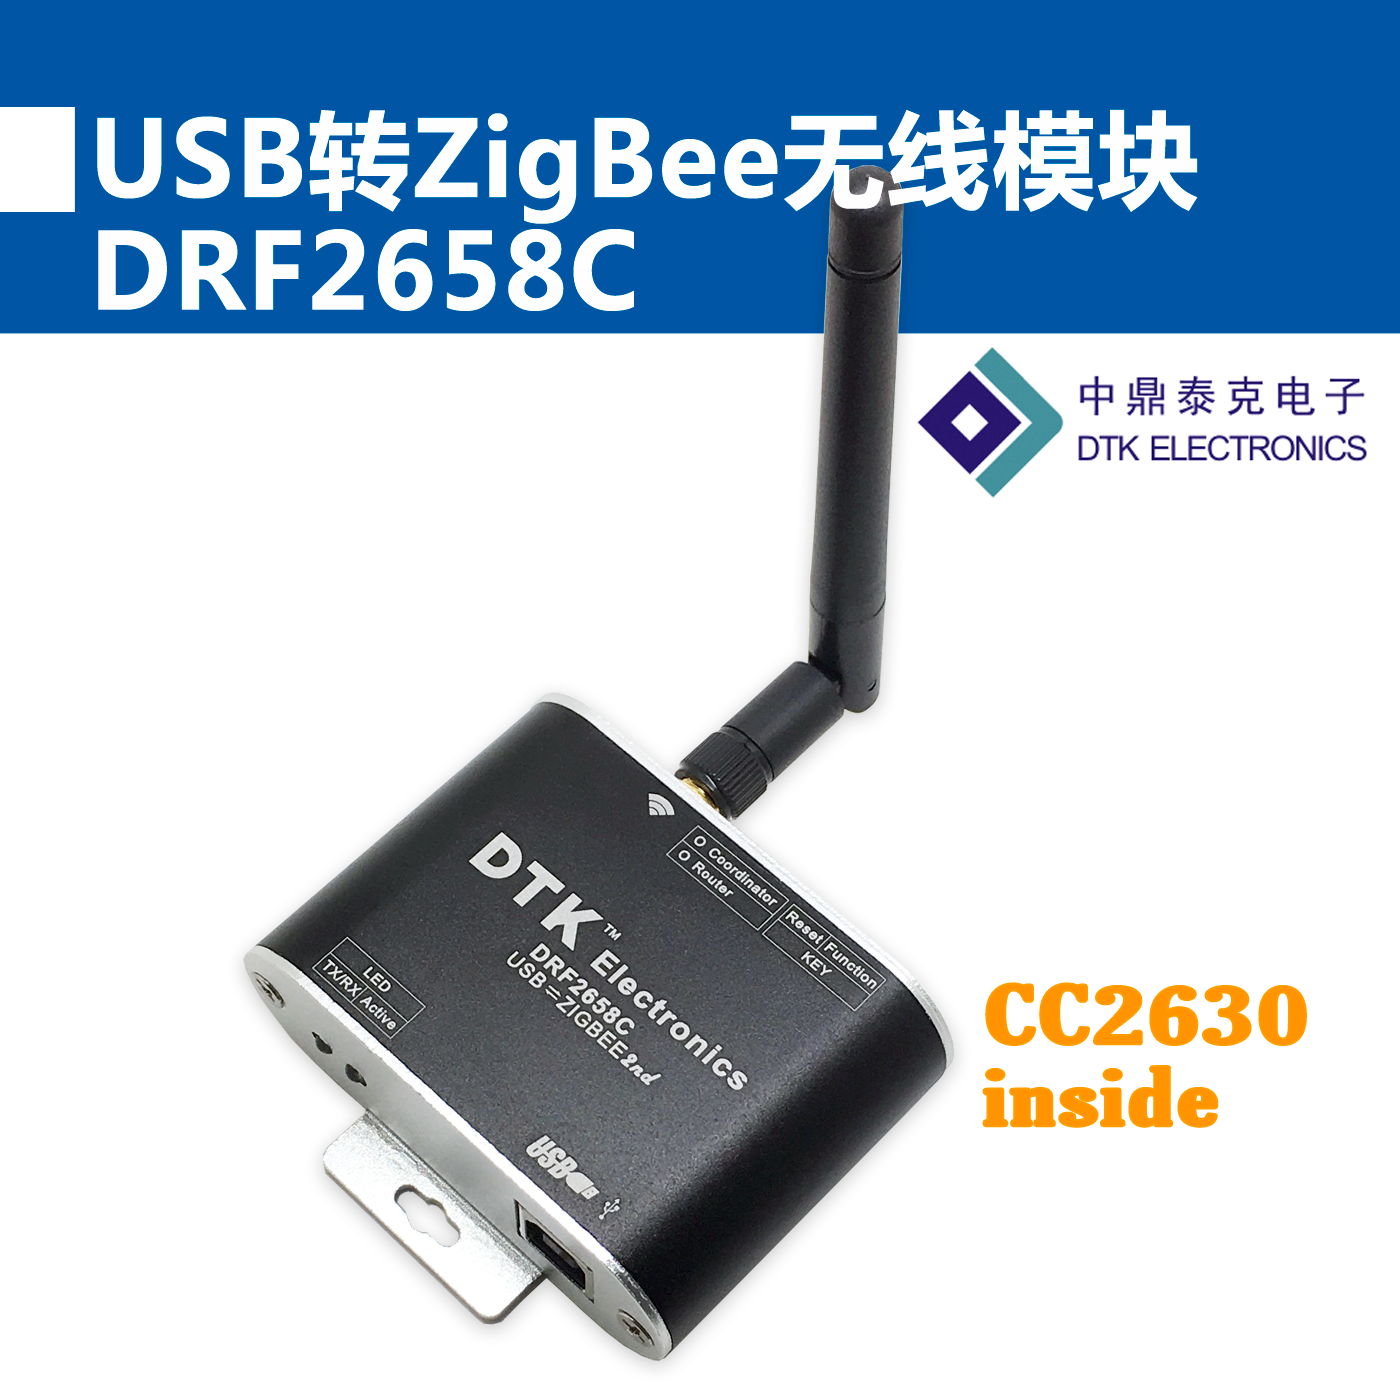 USB Switch to ZigBee Wireless Module (1.6 Km Transmission, CC2630 Chip, Far Beyond CC2530) freeshipping uart to zigbee wireless module 1 6km cc2530 module with antenna